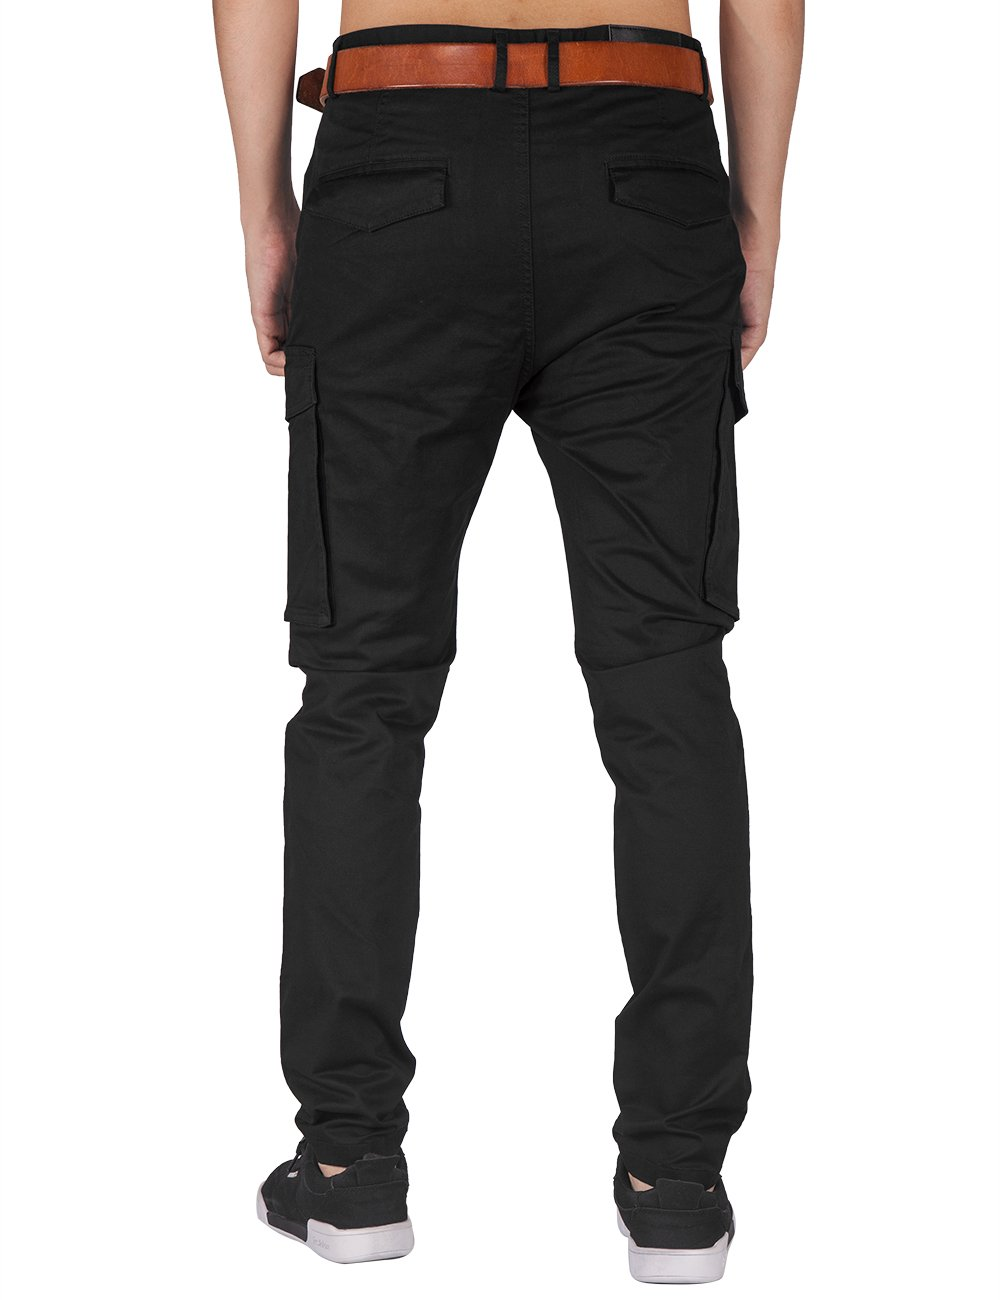 ITALY MORN Men Chino Cargo Jogger Pants Casual Twill Khakis Slim fit Black (S, Black) by ITALY MORN (Image #3)